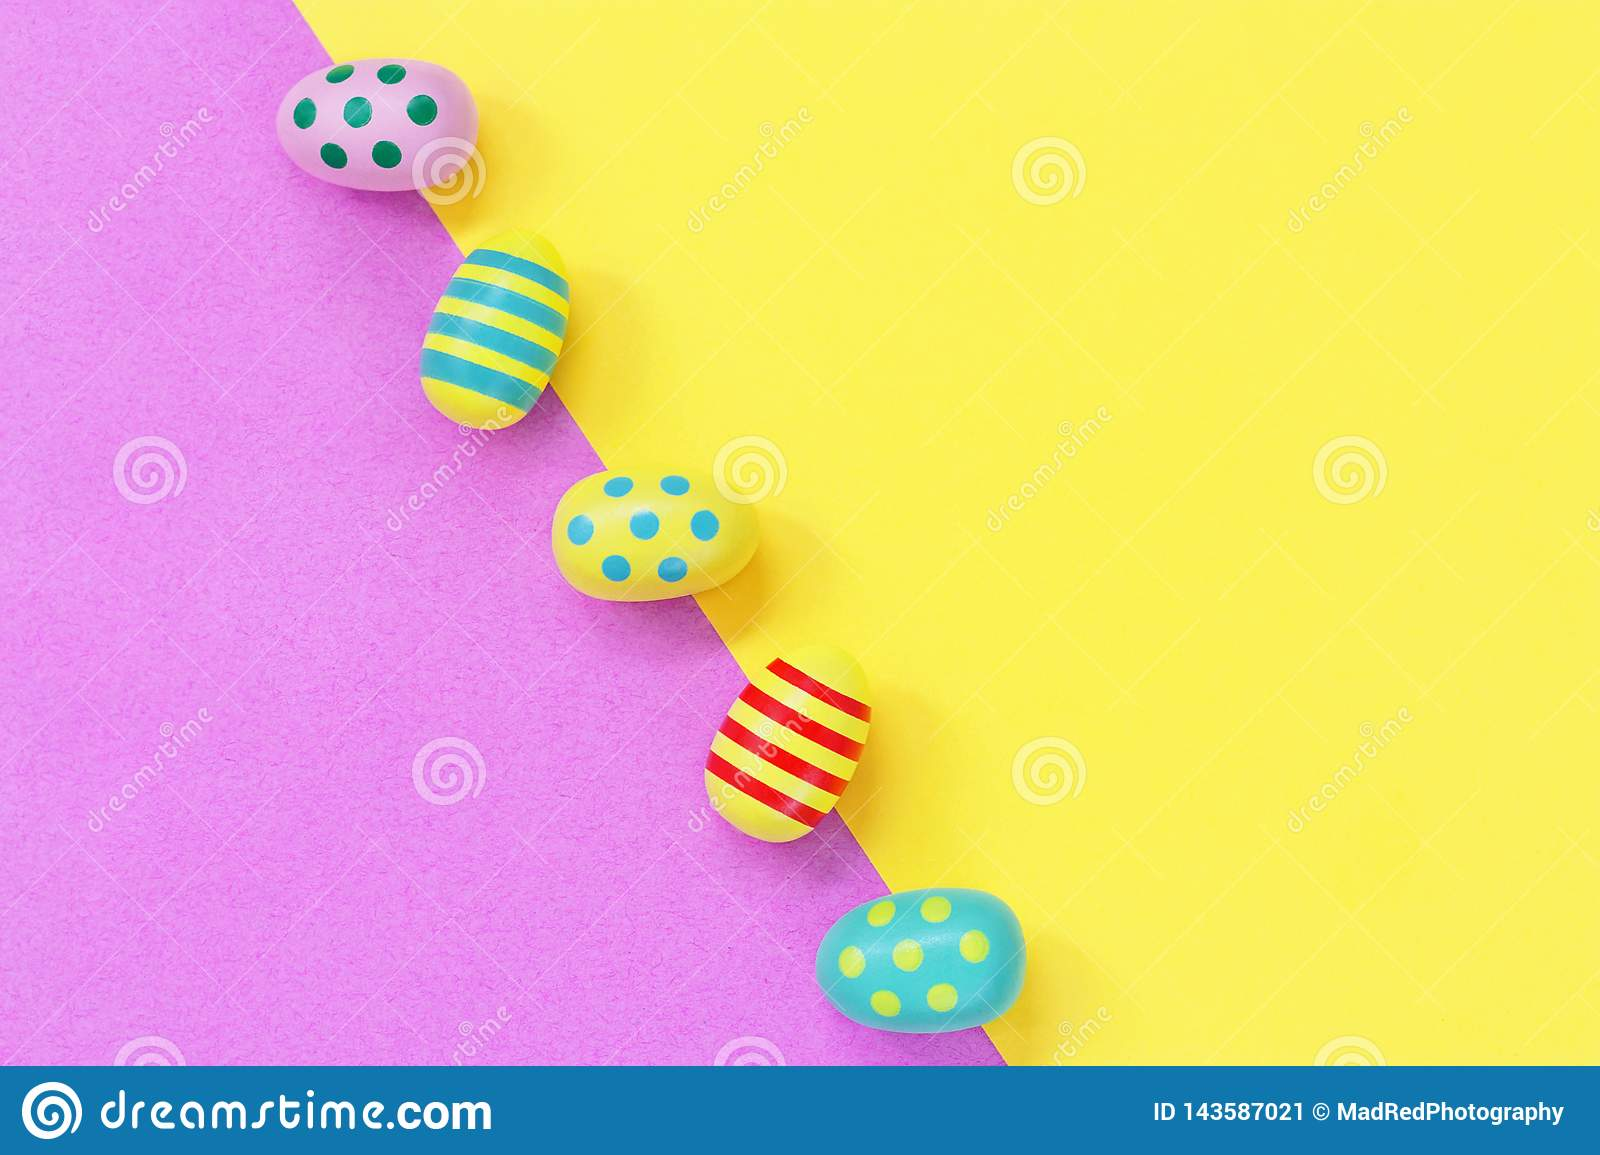 Five colourful Easter eggs against a yellow and pink diagonal background